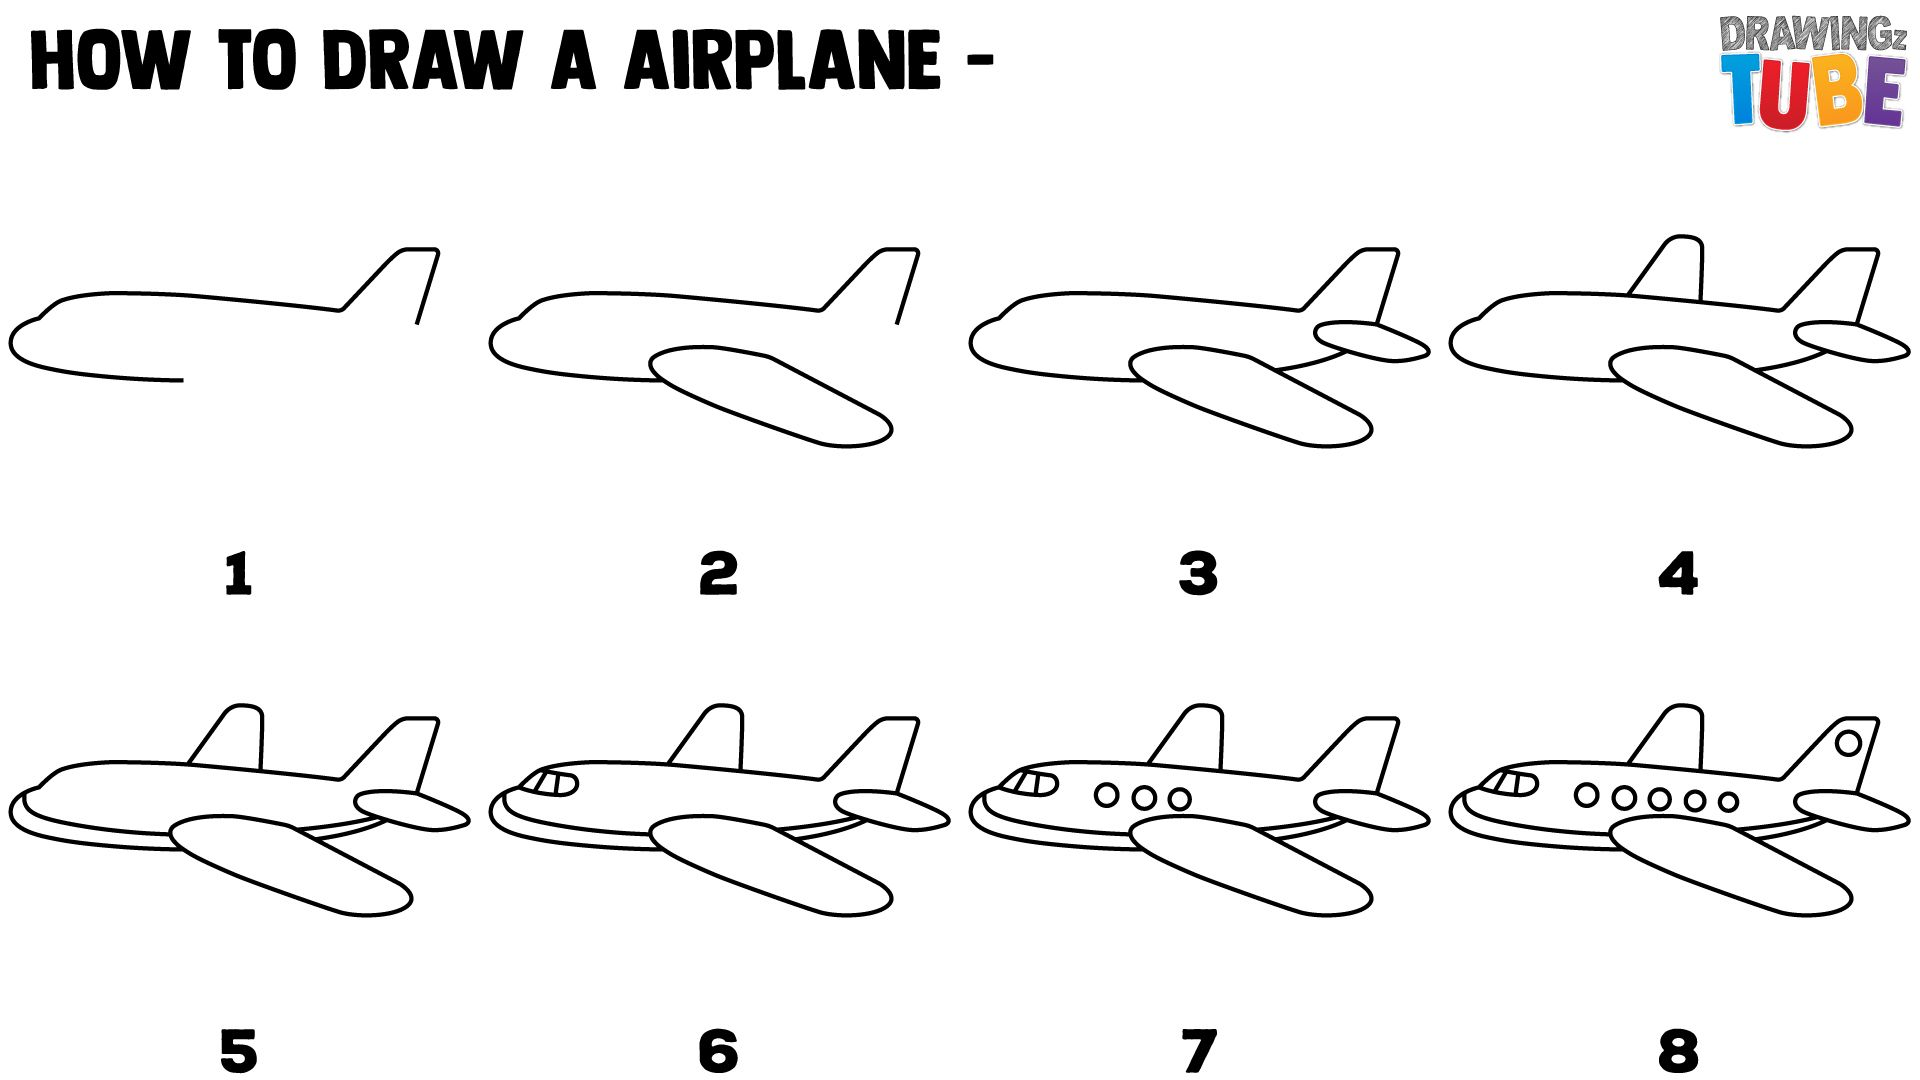 how to draw jet step by step easy plane drawing at getdrawings free download step jet how draw by to step